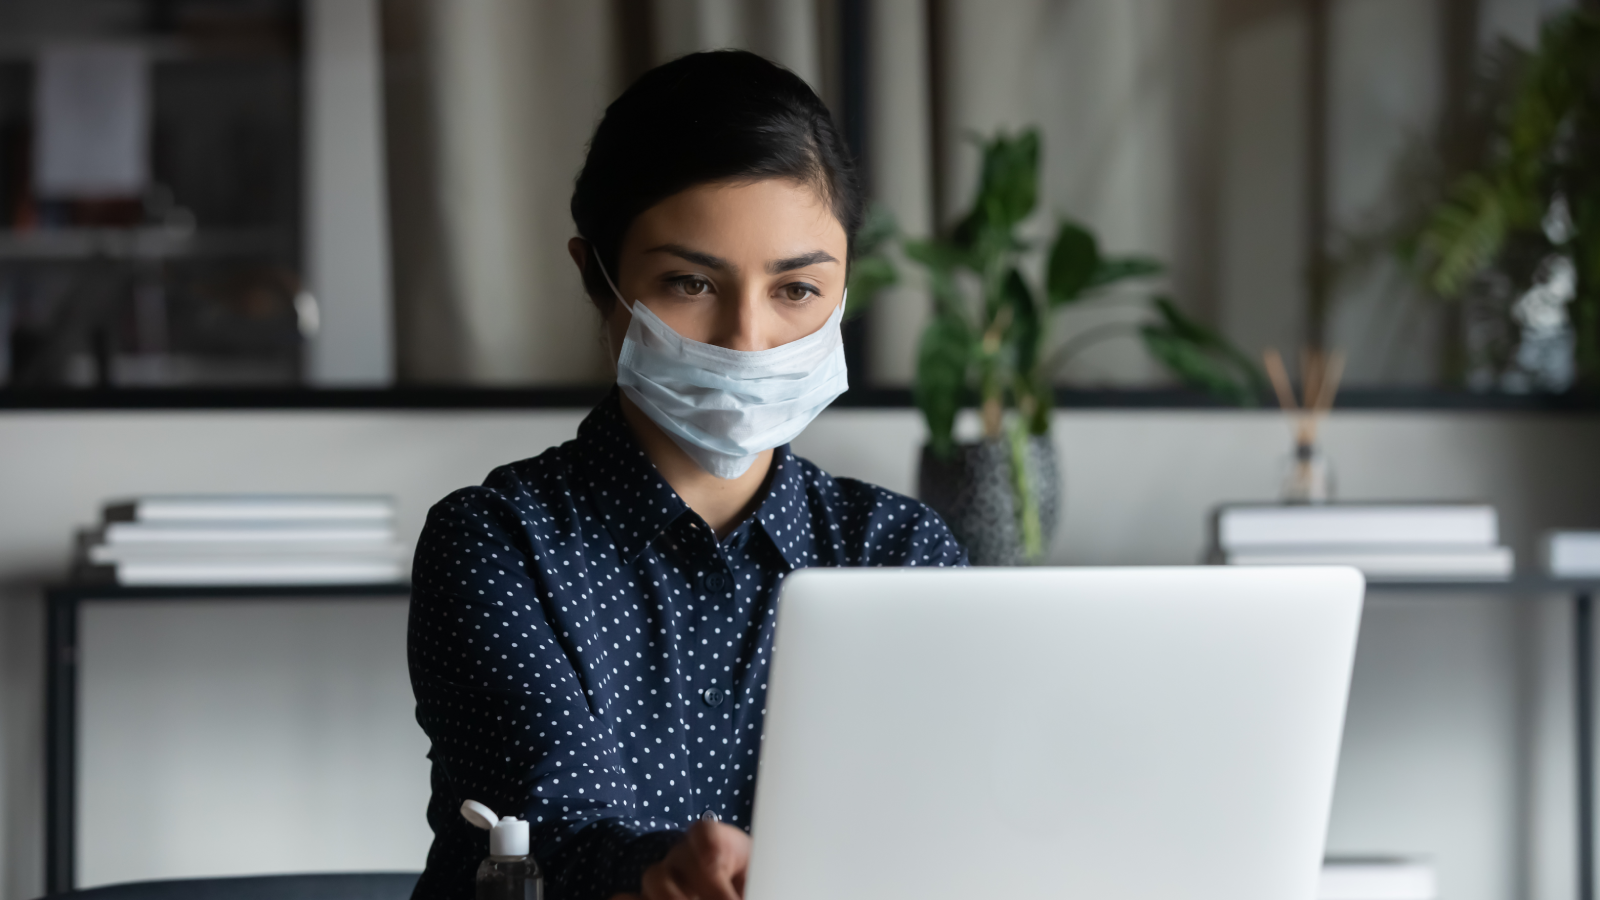 How to safely go back into the office during the COVID-19 pandemic